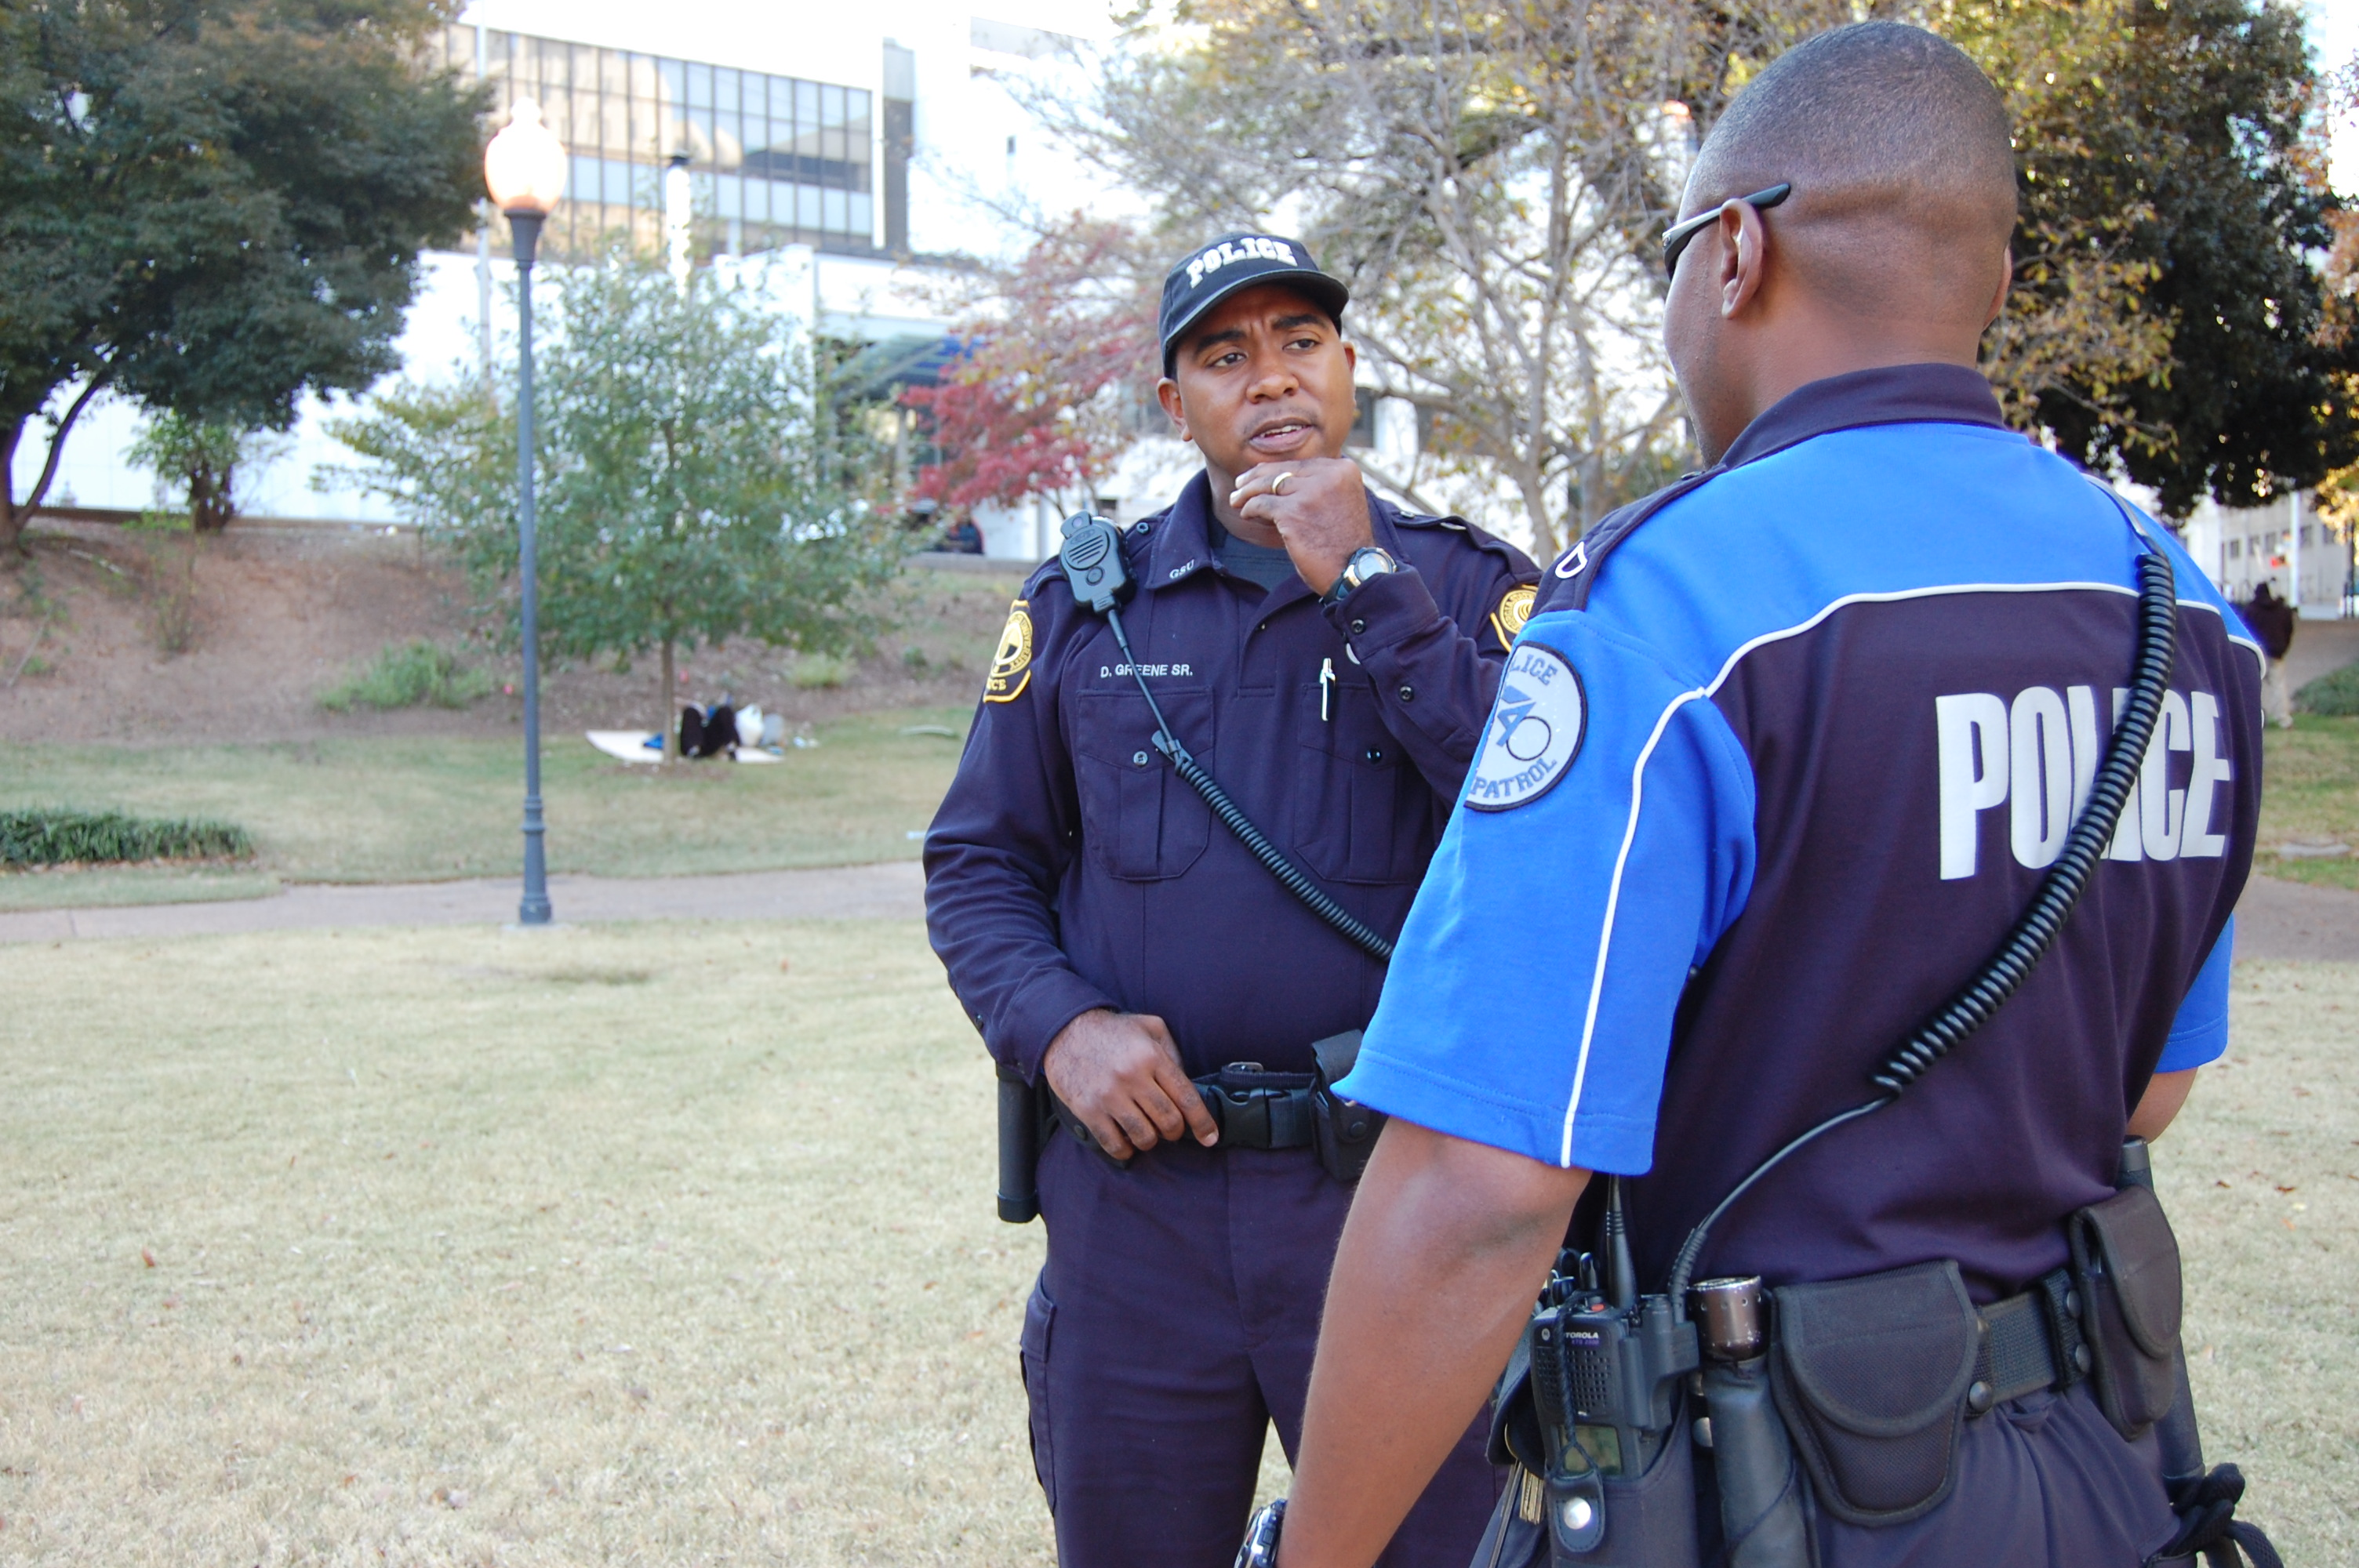 New officer recruits could increase campus security  The Signal